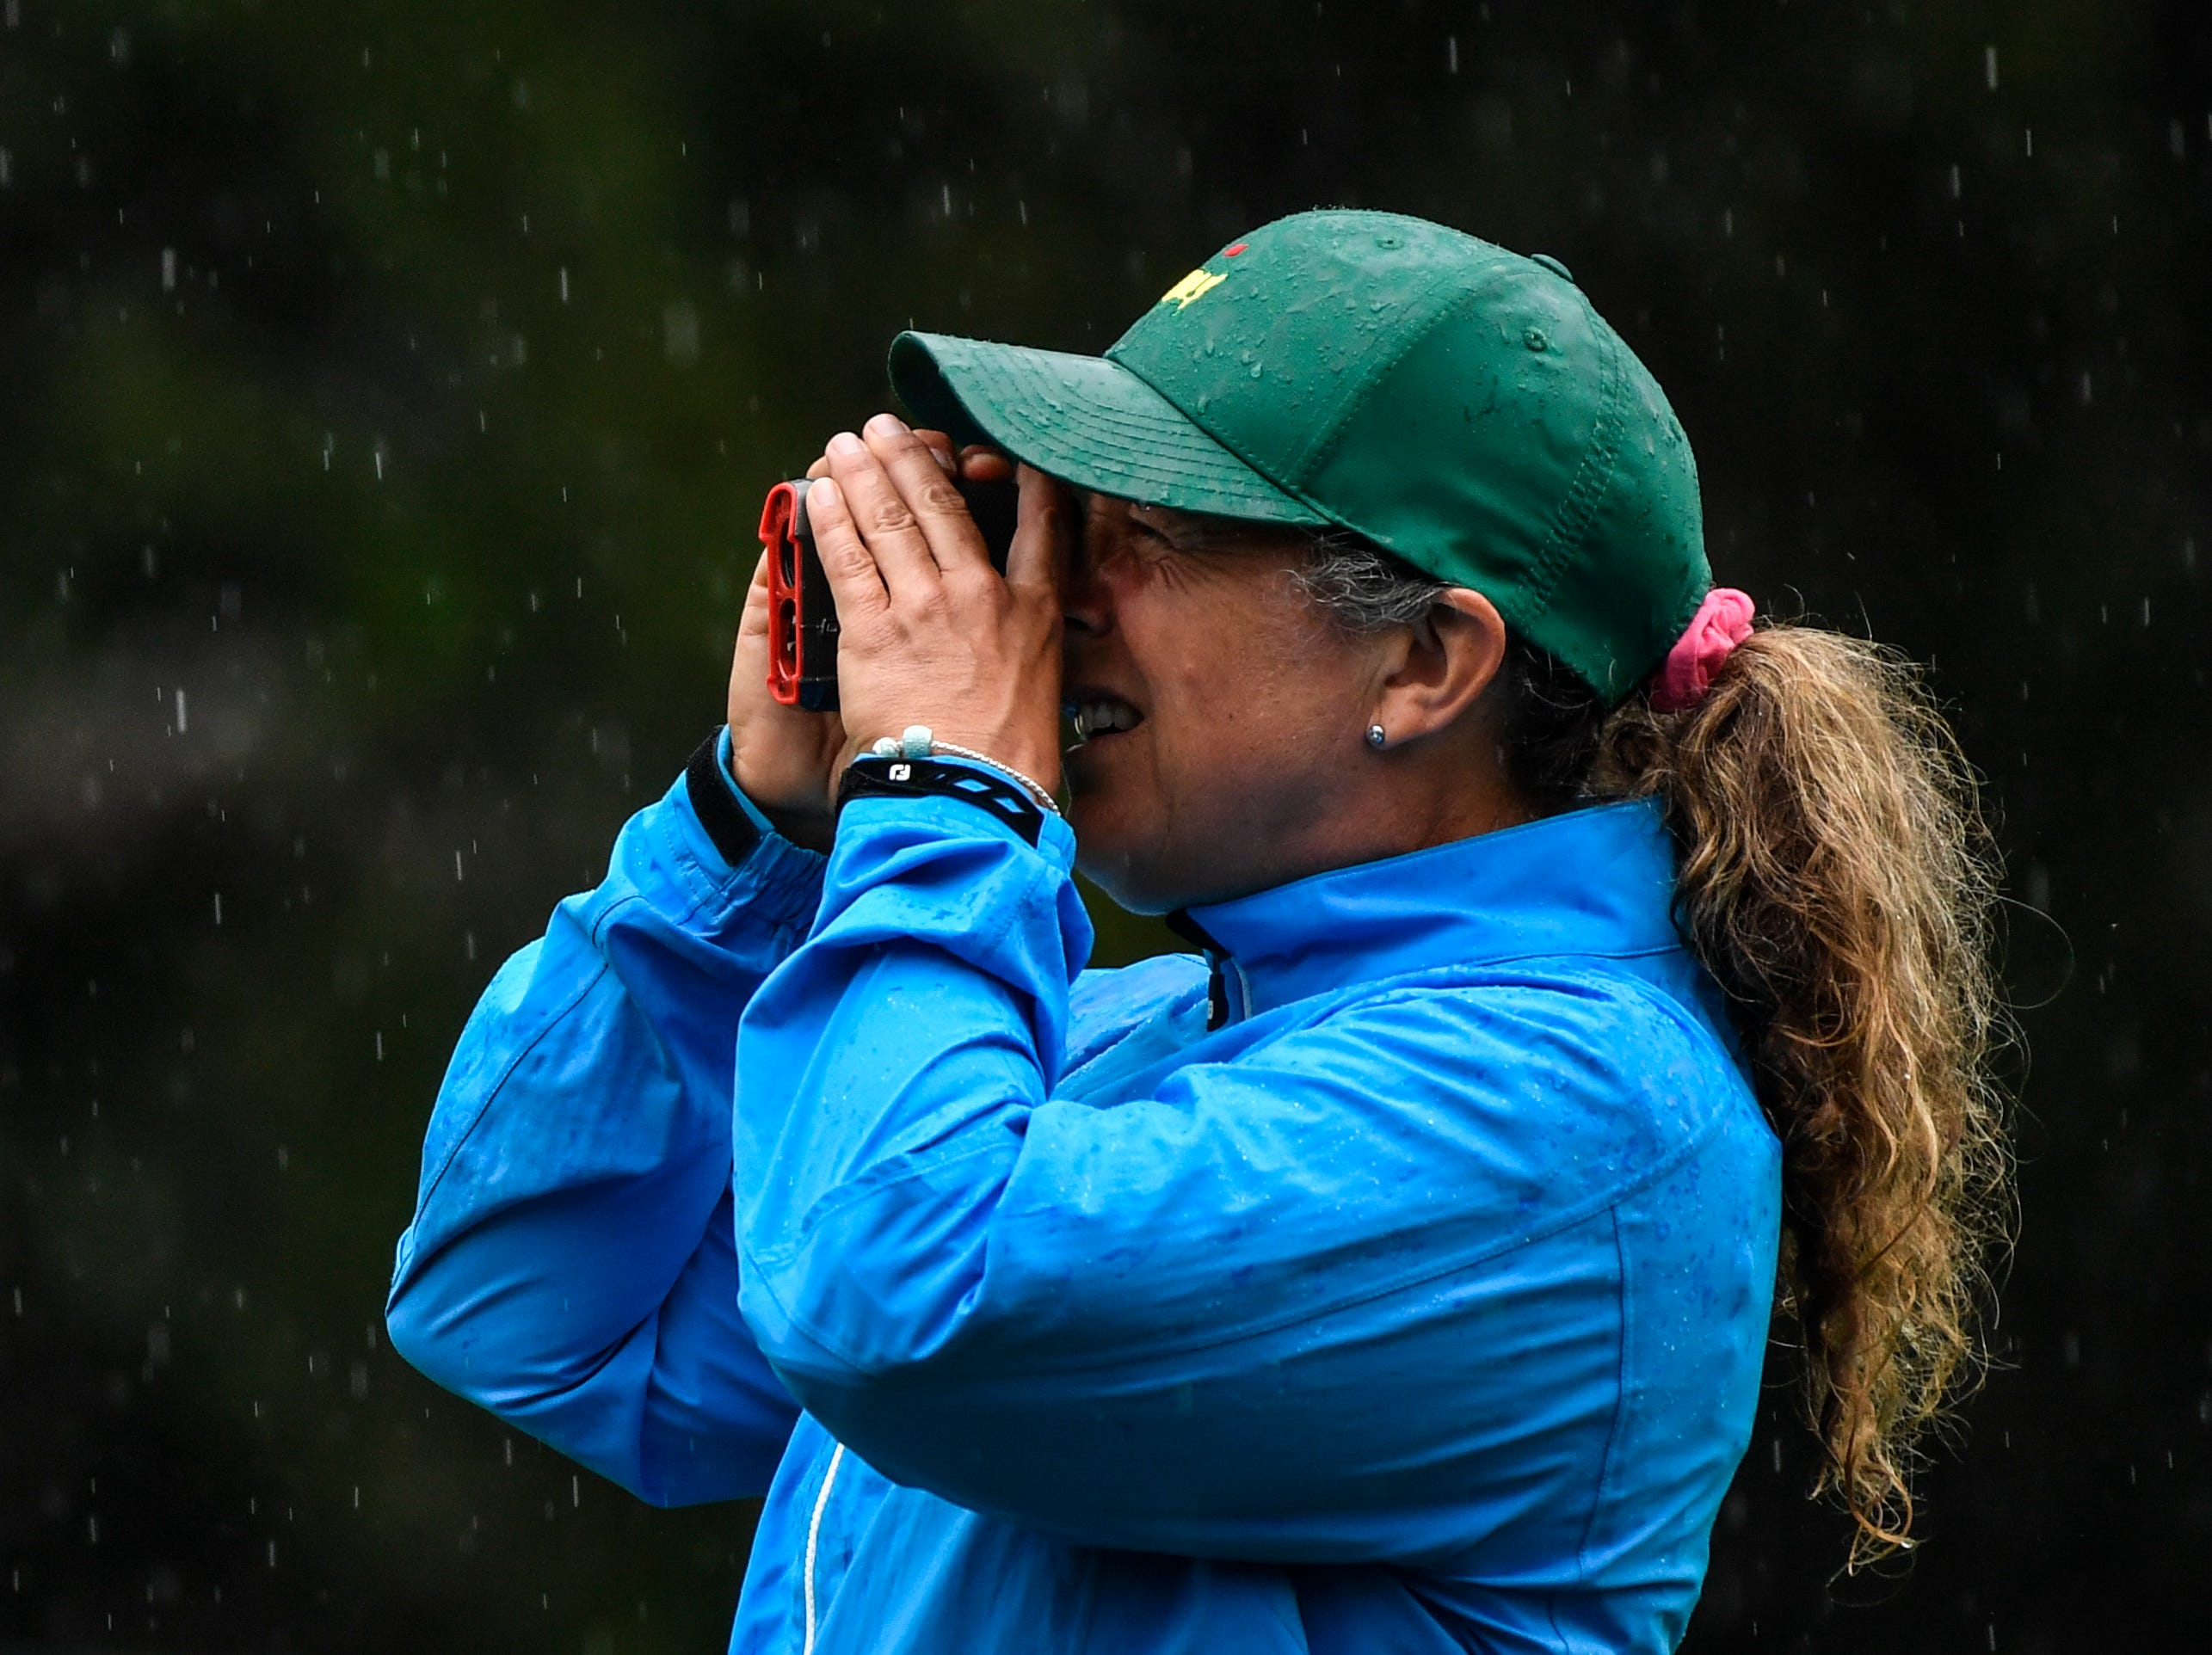 Fanny Sunesson, who is caddying for Henrik Stenson, checks yardage on the first fiarway during a practice round for The Masters golf tournament at Augusta National Golf Club.